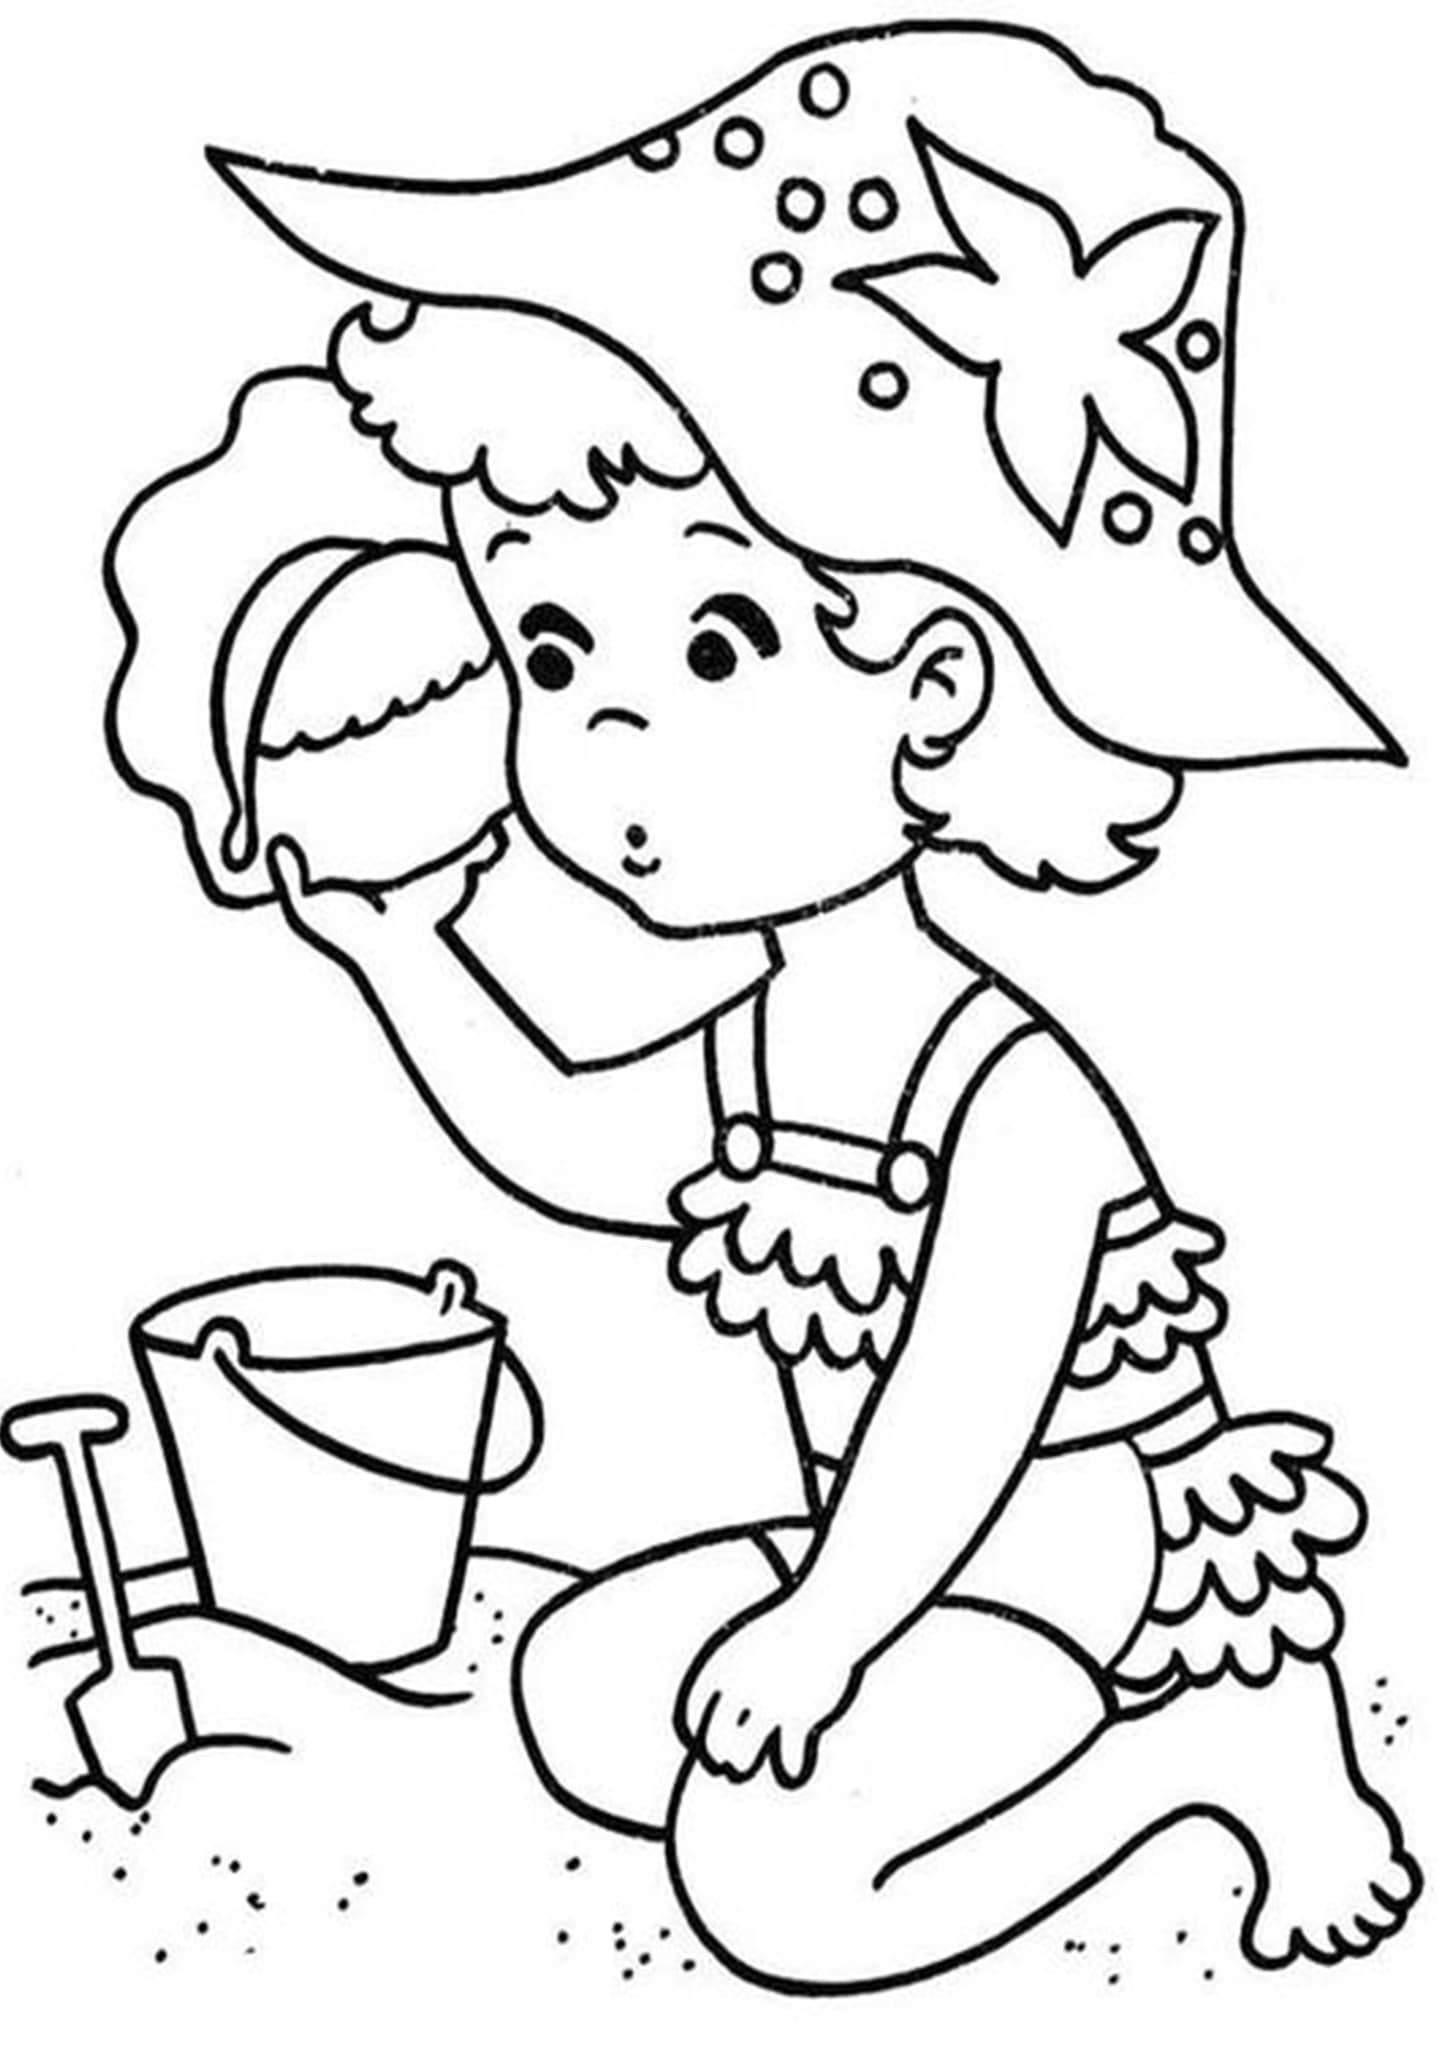 Free & Easy To Print Summer Coloring Pages - Tulamama